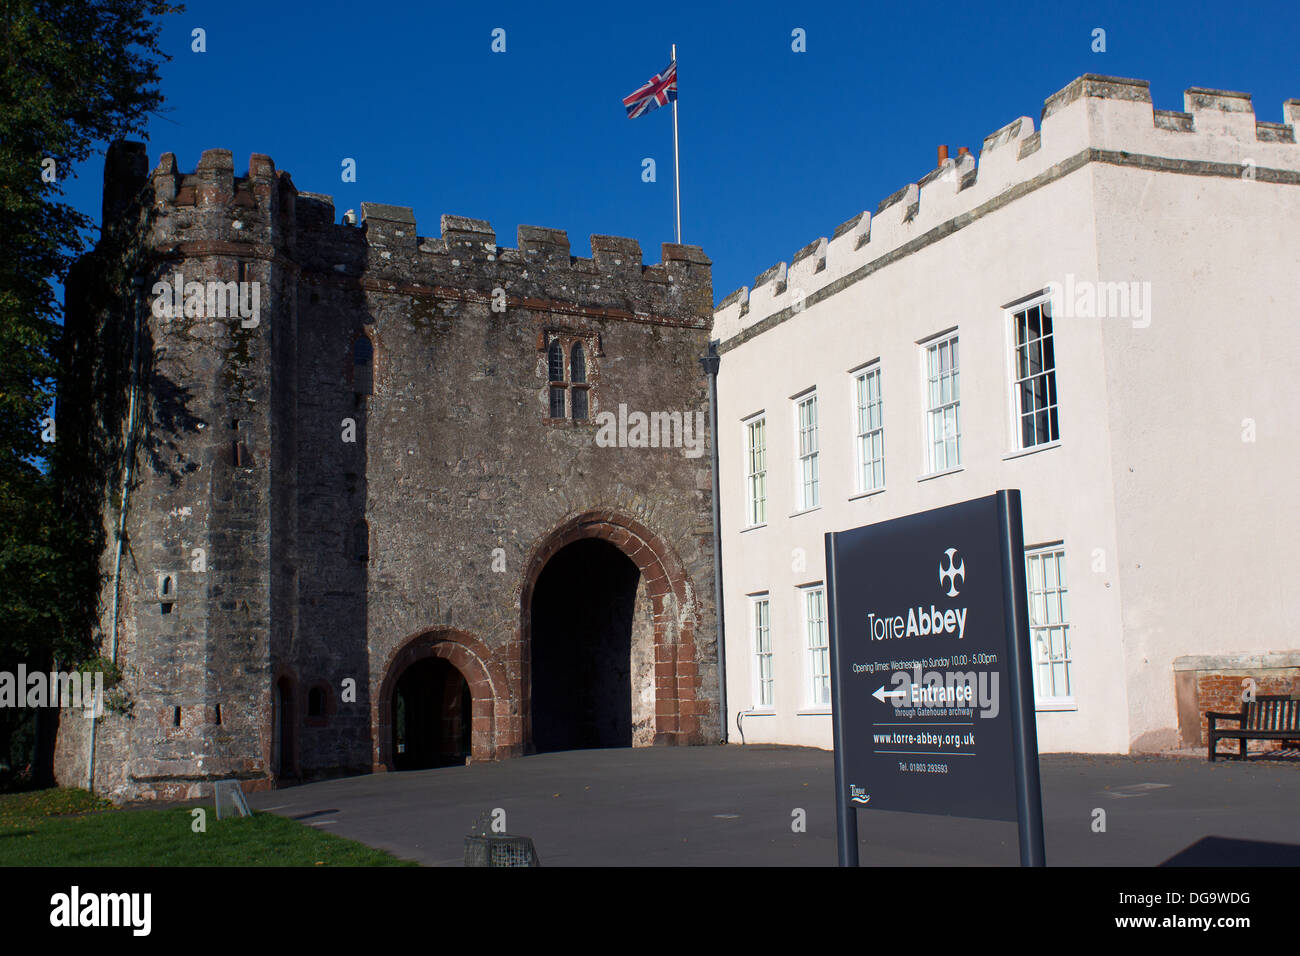 Torre Abbey is a historic building and art gallery in Torquay, Devon,  the South West of England.Ancient Scheduled Monument.800 years of Catholicism - Stock Image